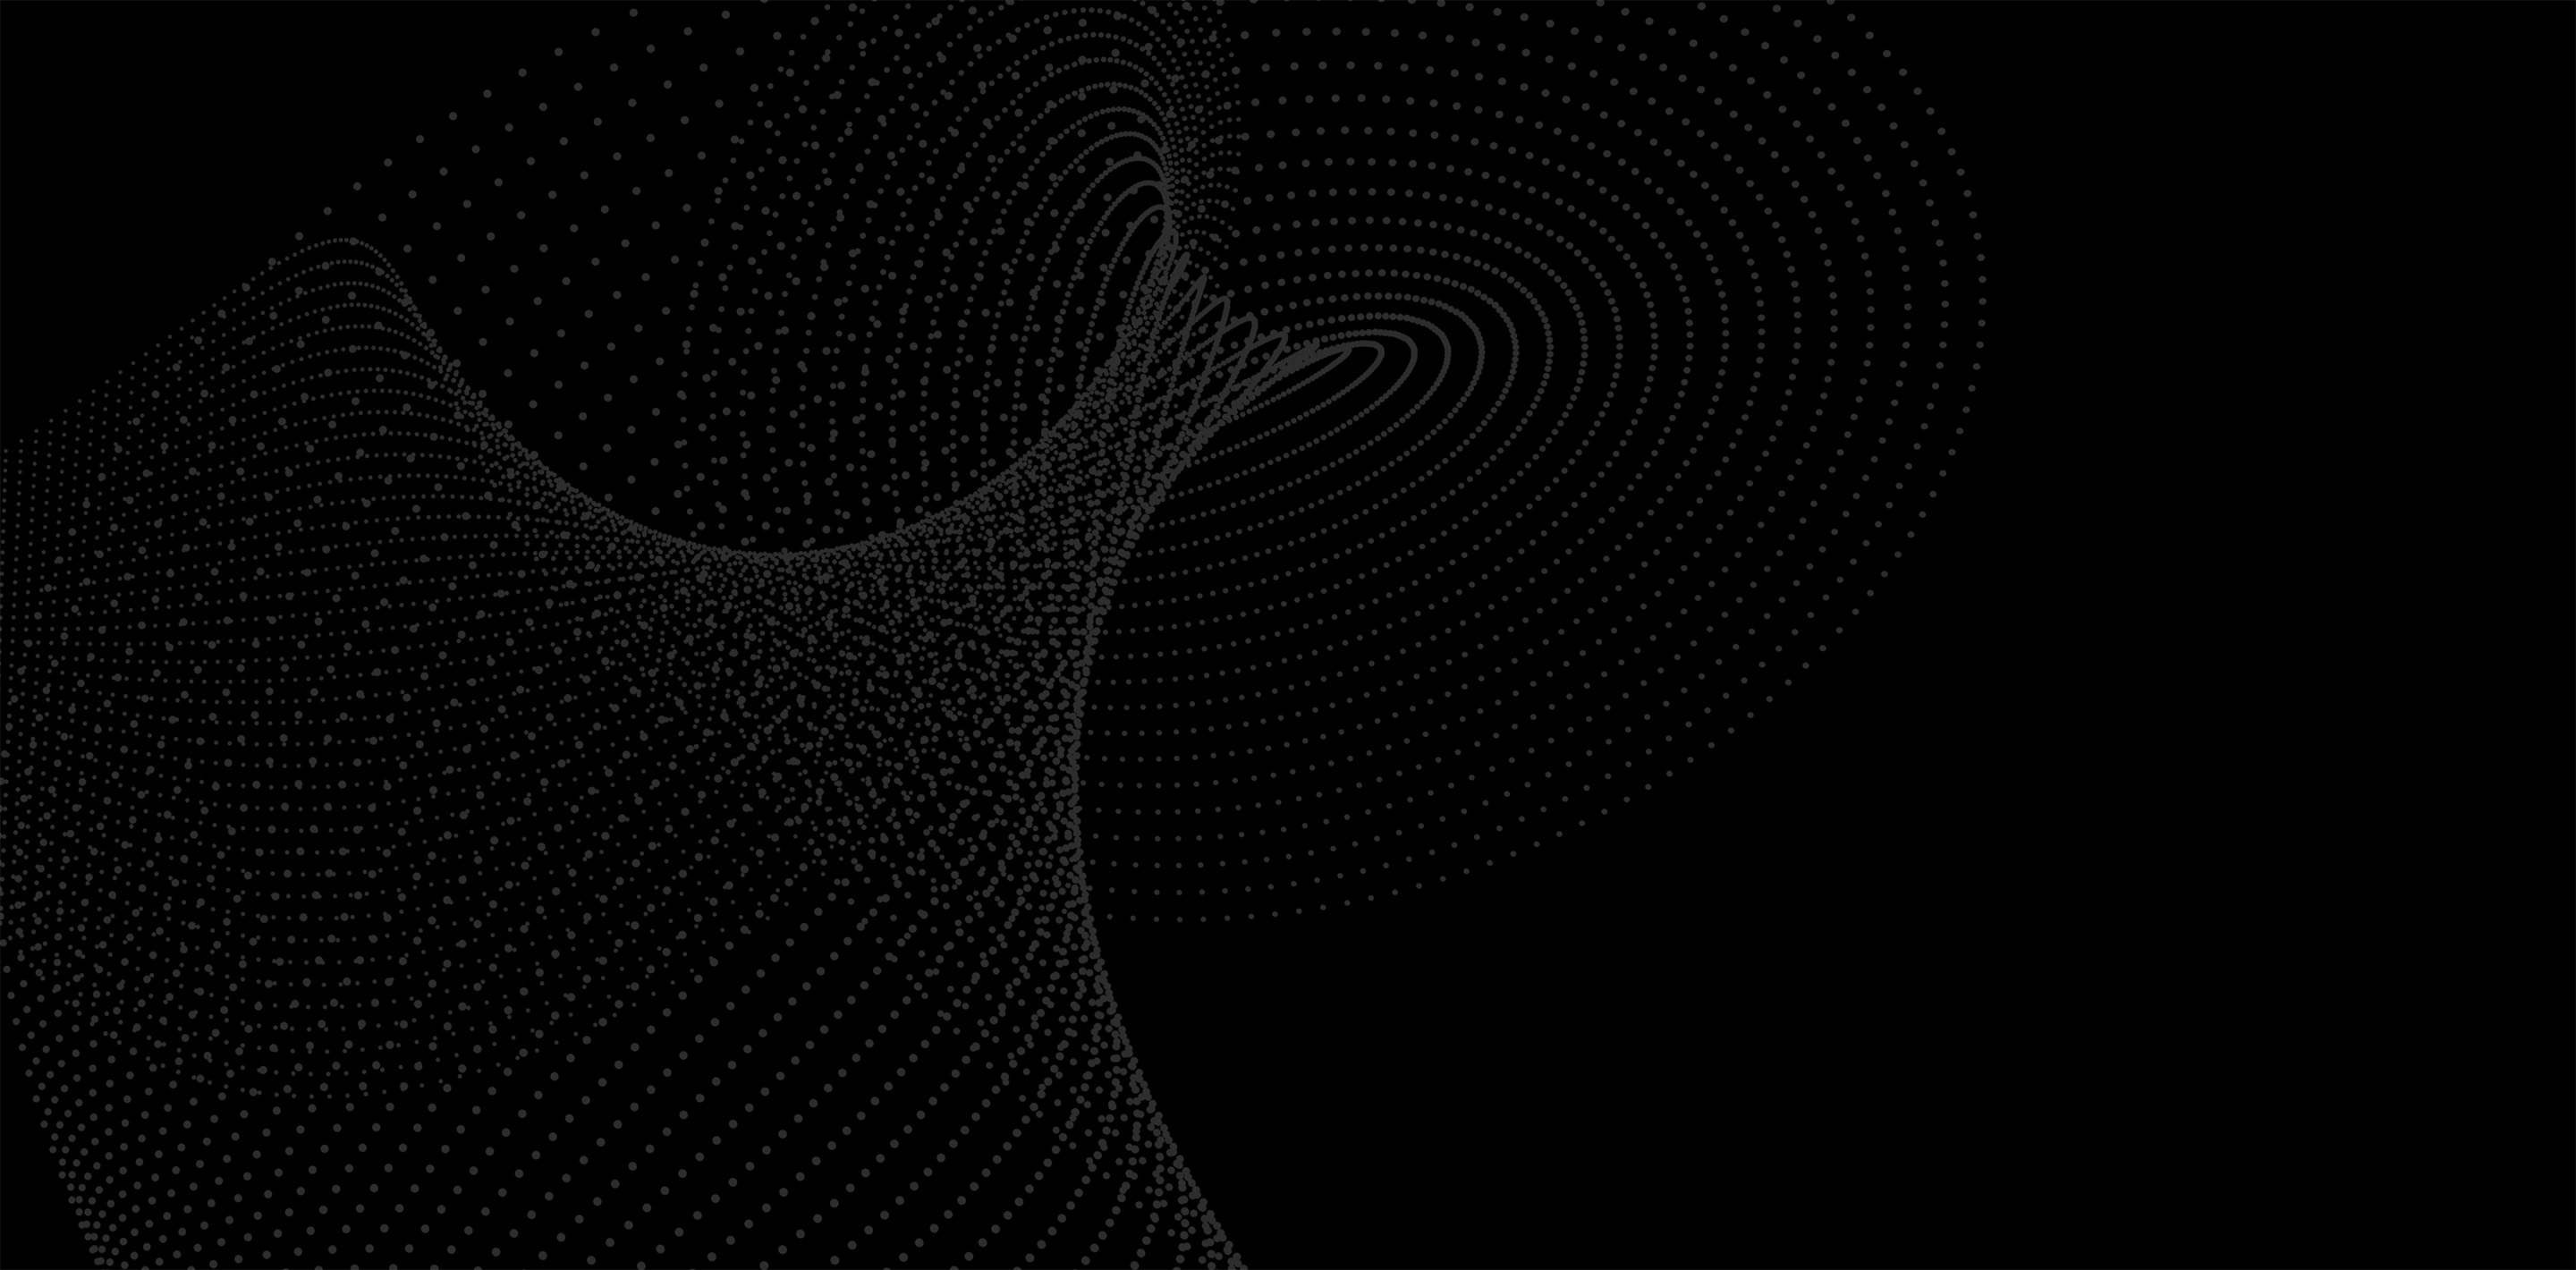 decorative background of a series of dots that together give the gestalt impression of an ocean wave...of data